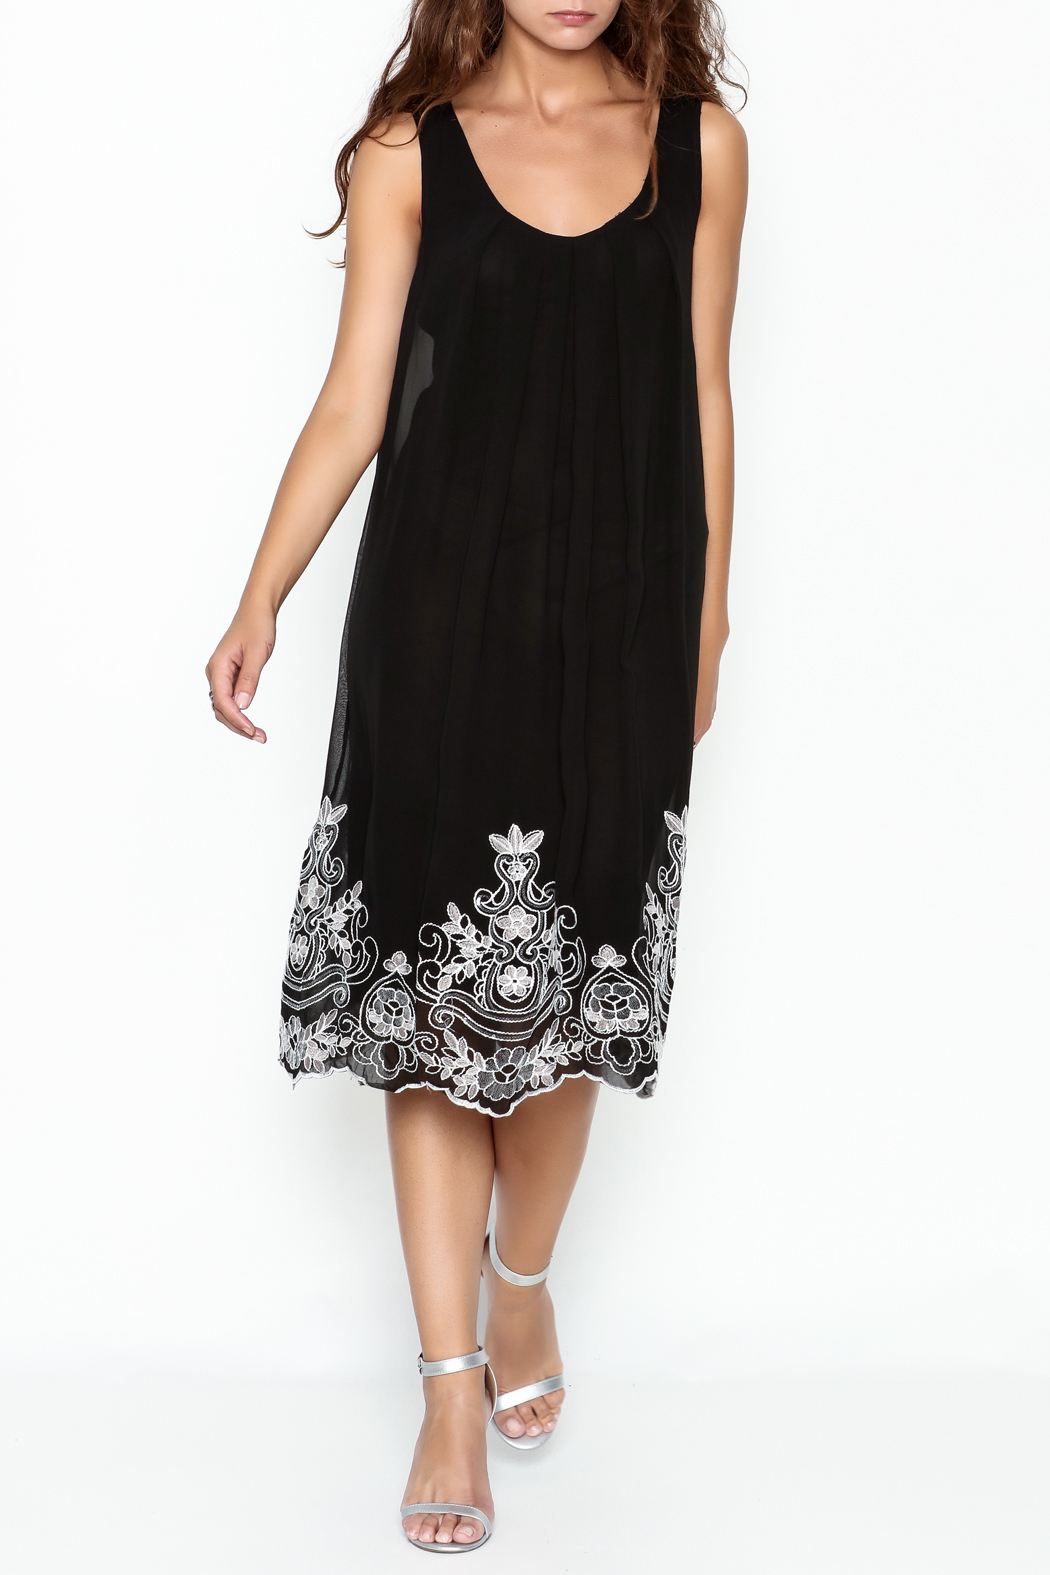 Monoreno Black Sequin Floral Dress - Main Image